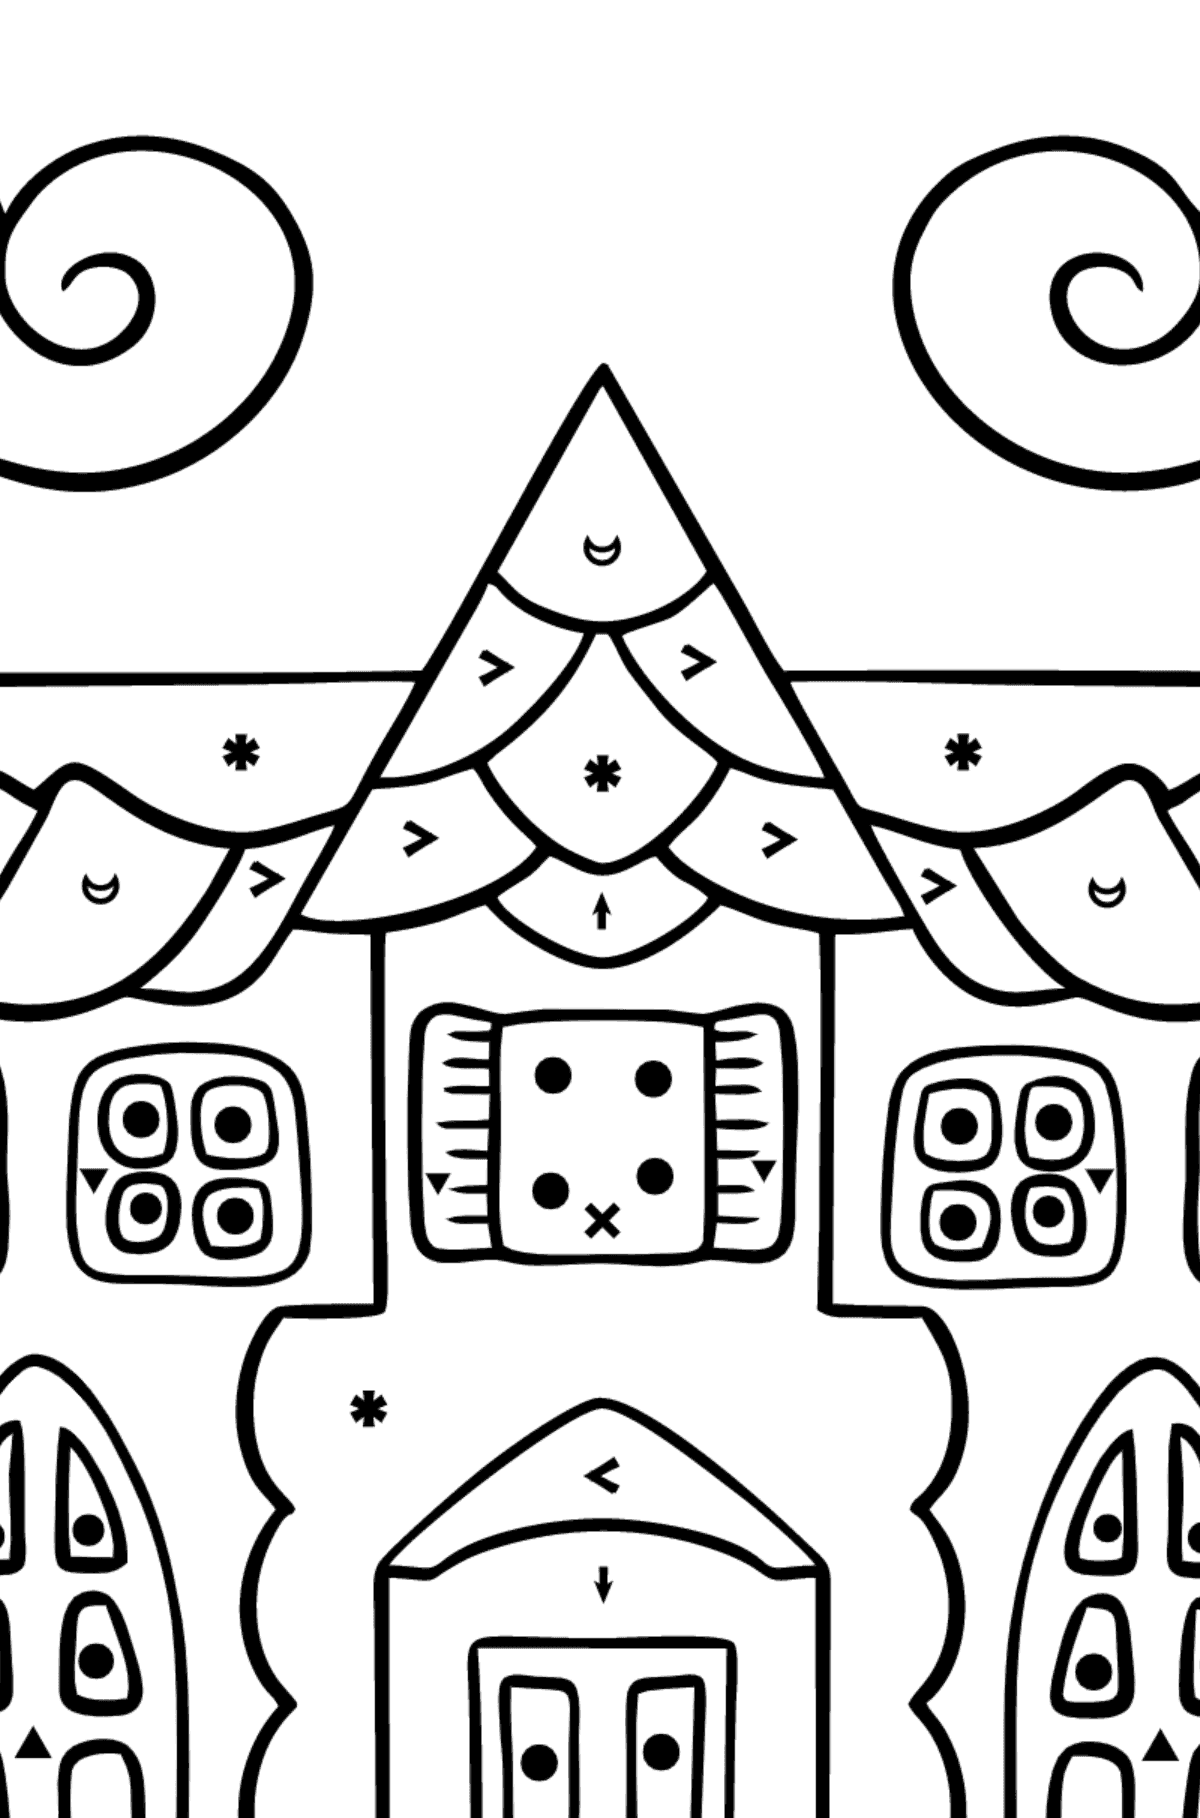 Complex Coloring Page - A House in an Enchanted Kingdom - Coloring by Symbols for Kids